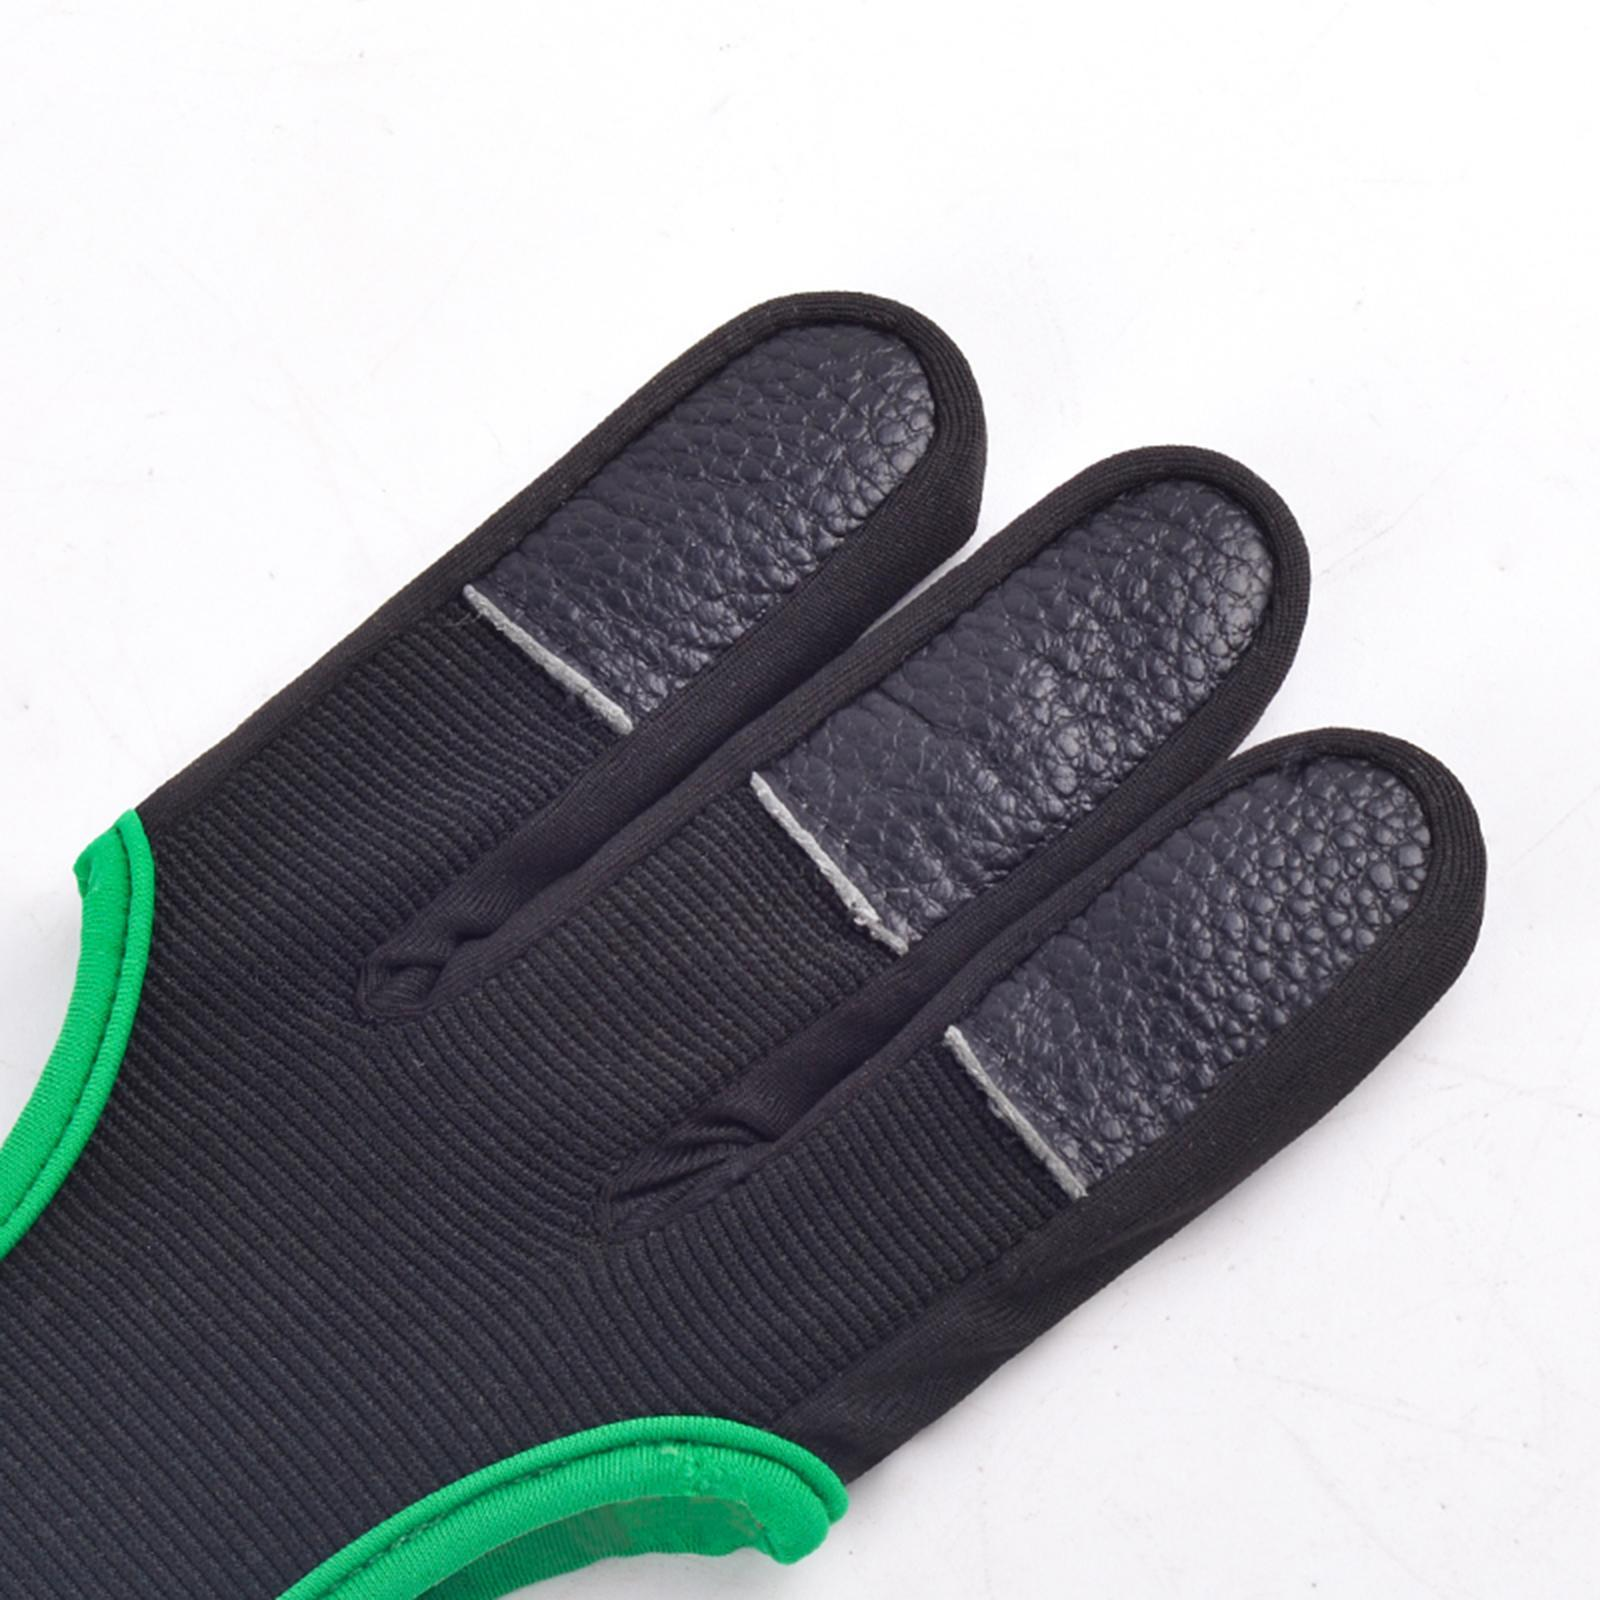 thumbnail 59 - Archery Glove for Recurve & Compound Bow 3 Finger Guard for Women Men Youth